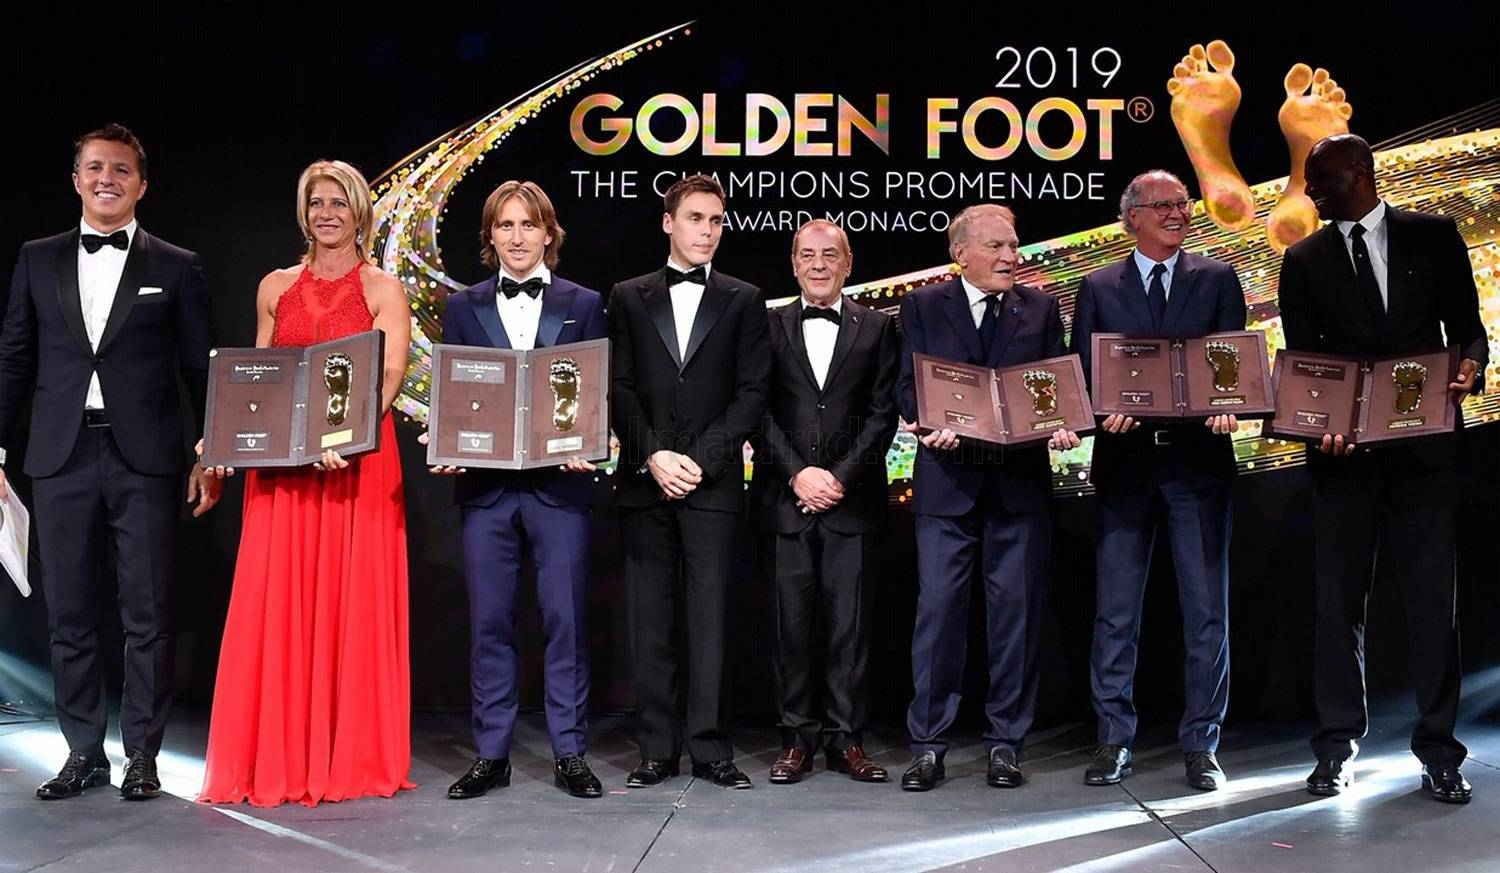 Real Madrid - Modric, Premio Golden Foot 2019 - 13-11-2019